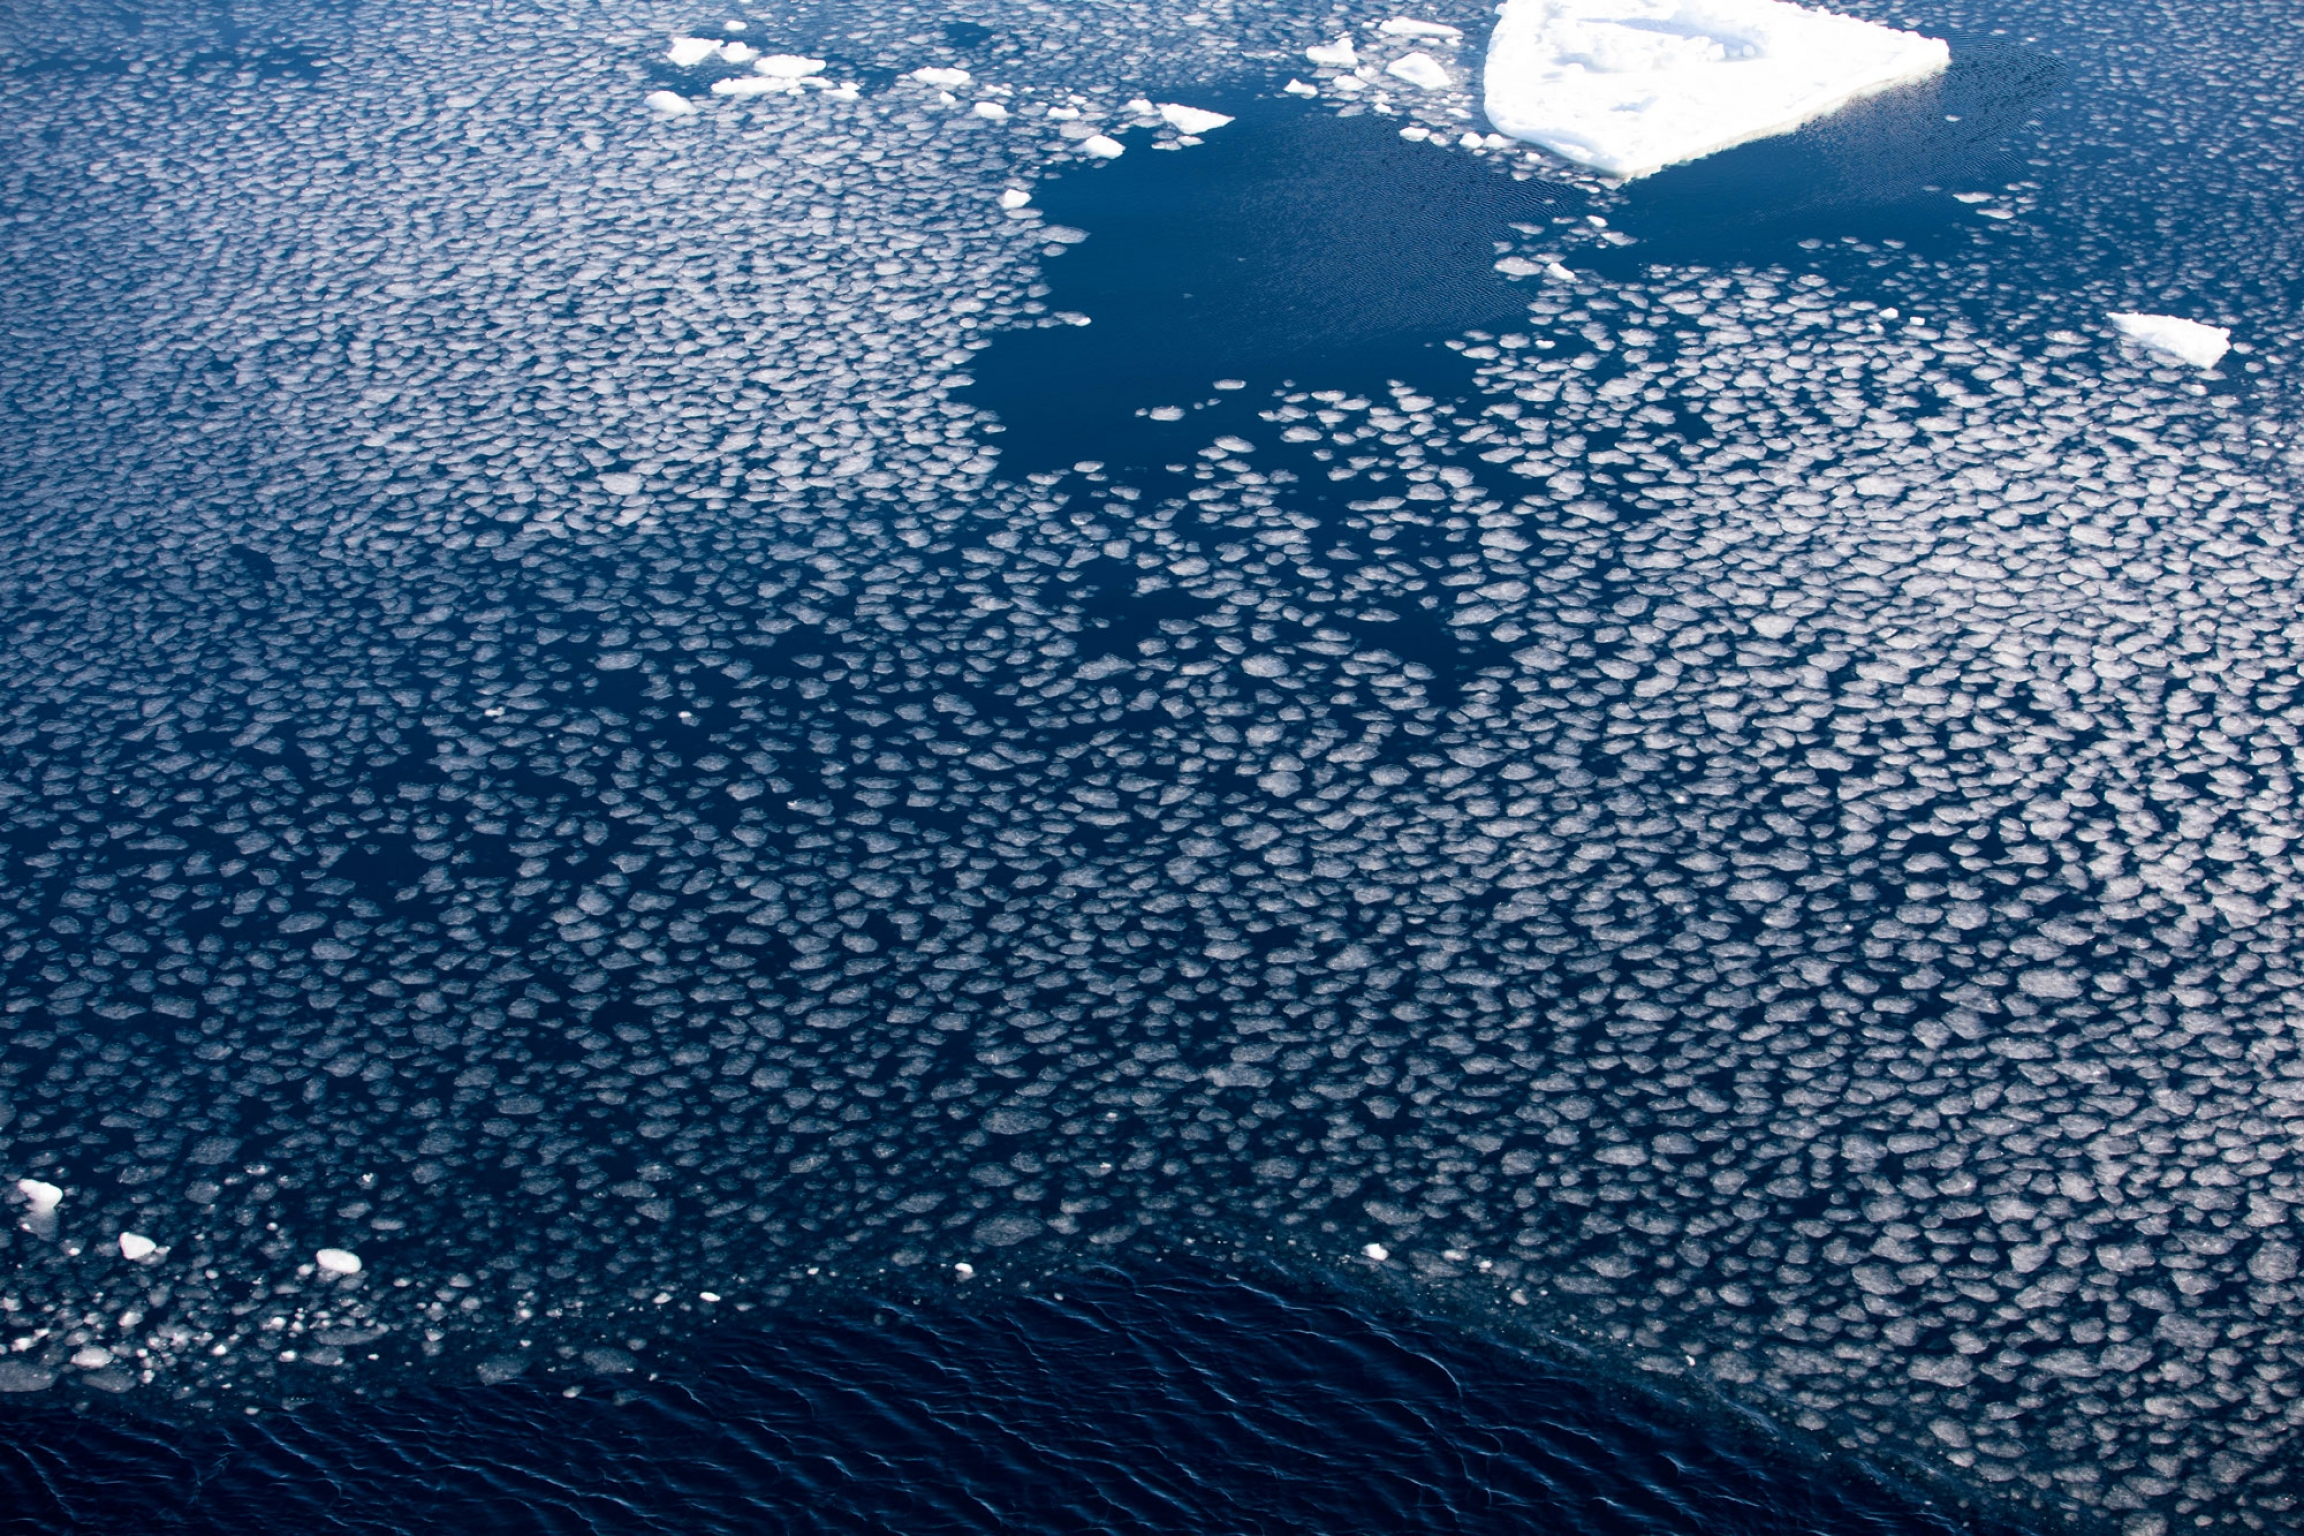 Thousands of circular white pieces of ice are show across the photo.